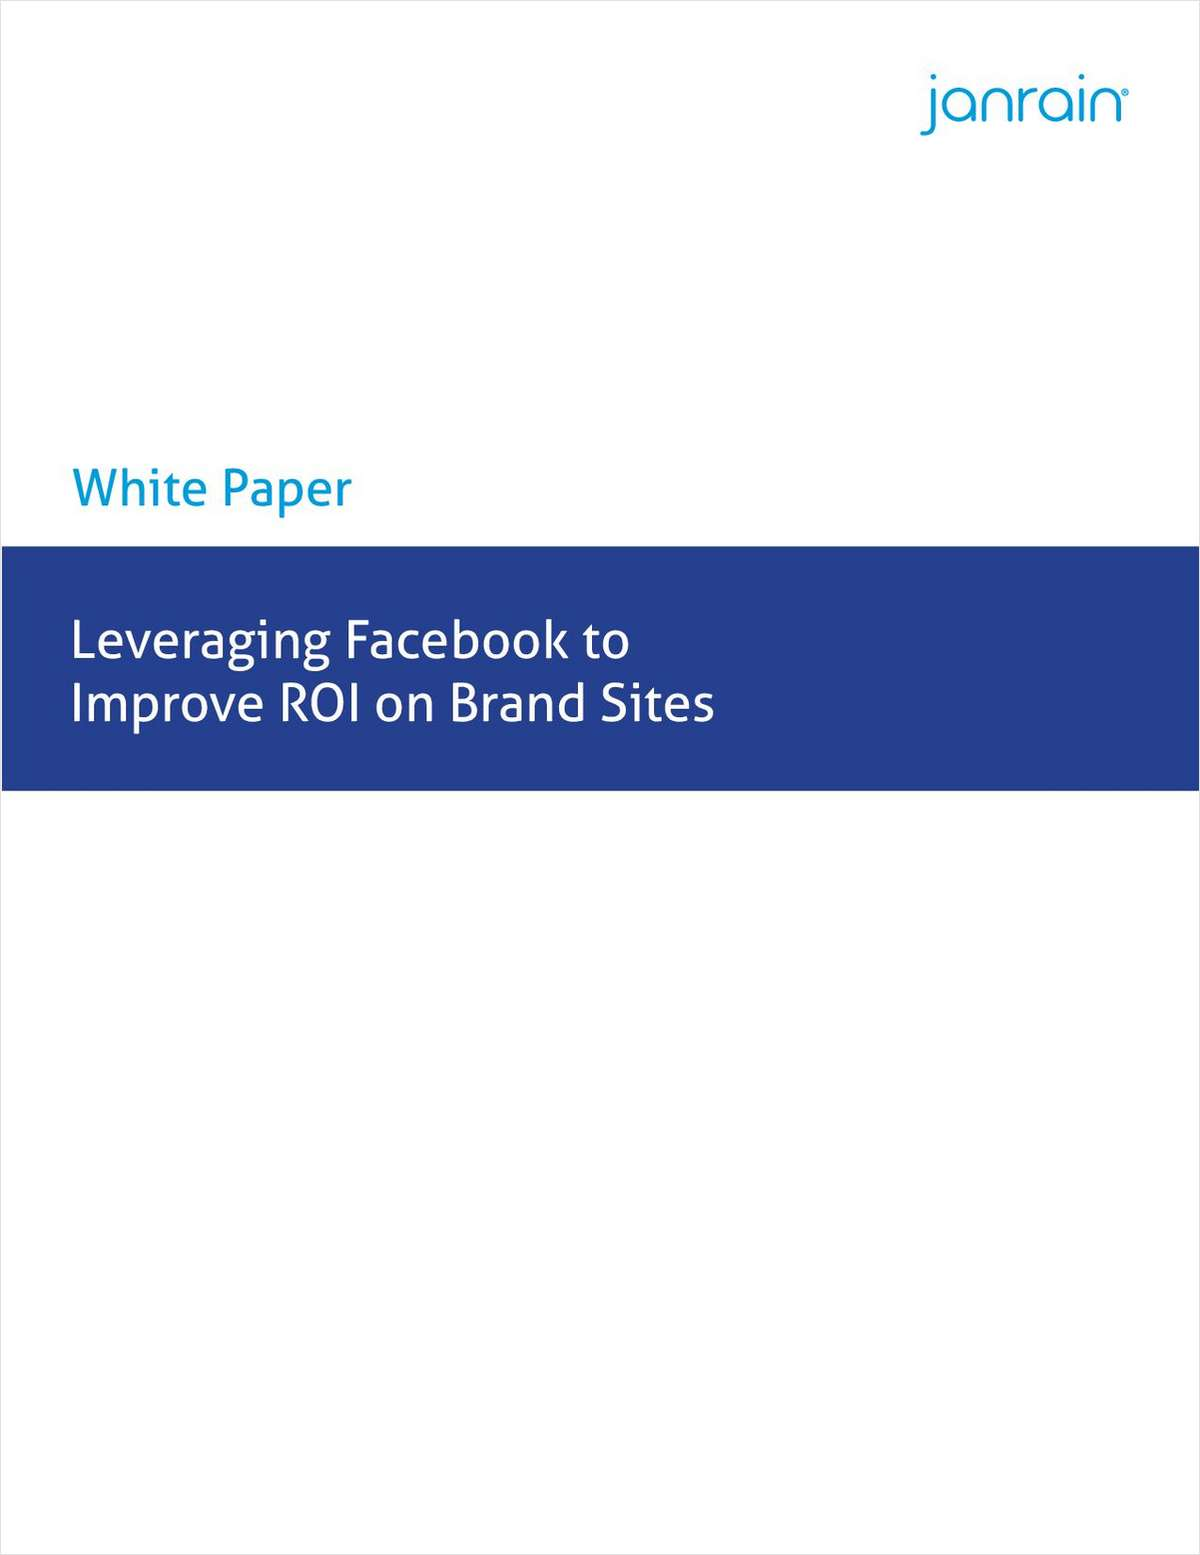 Leveraging Facebook to Improve ROI on Brand Sites